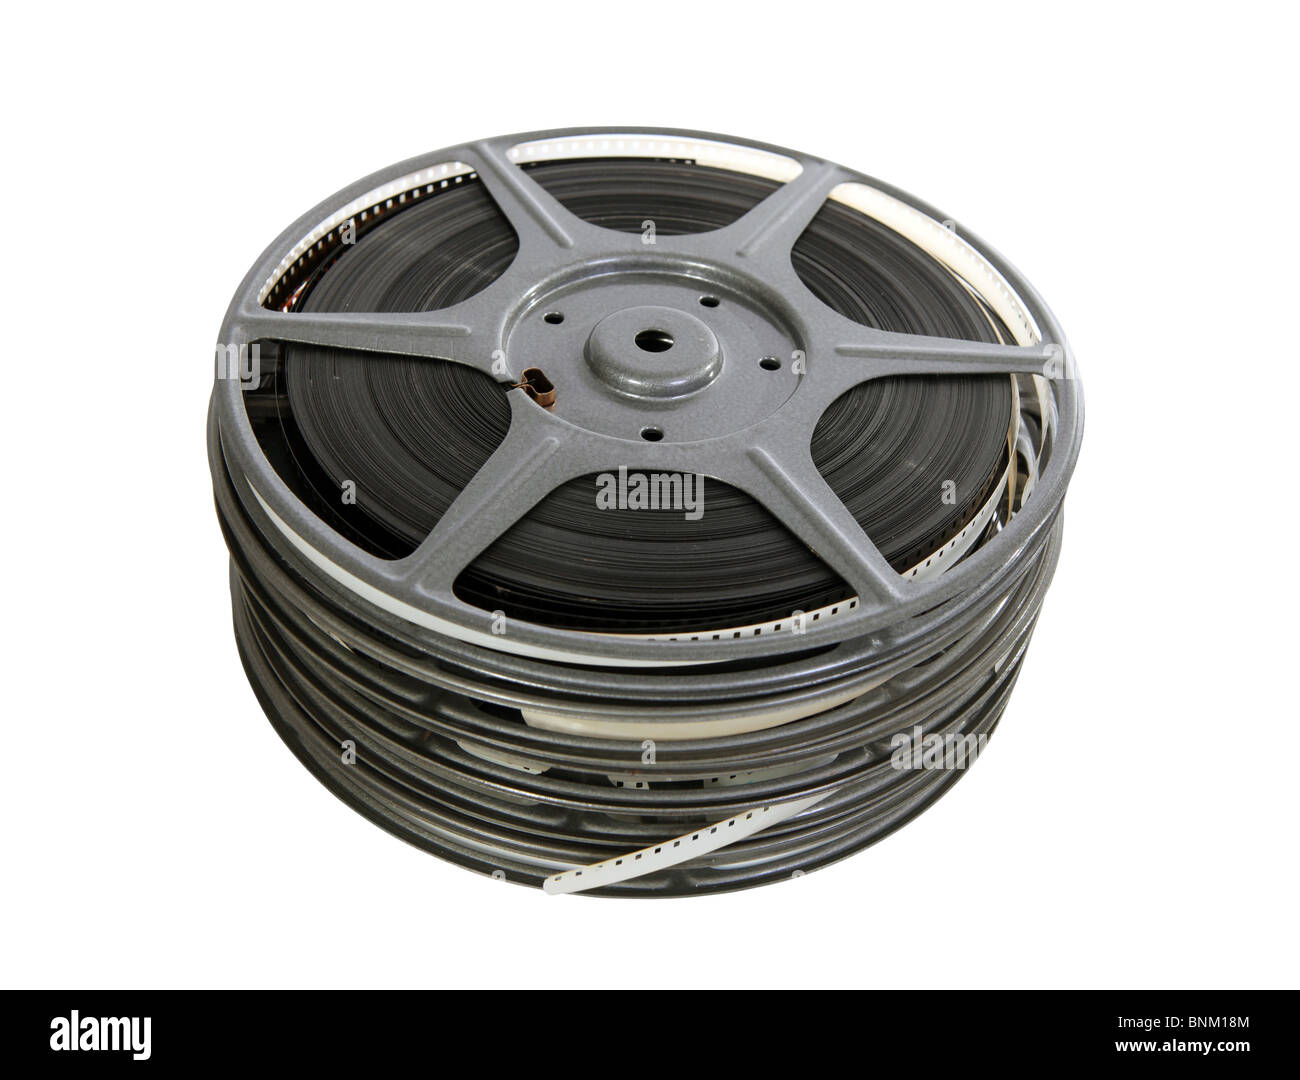 Film reel stack stock photos film reel stack stock images alamy old 8mm film reels with white leader stock image altavistaventures Images